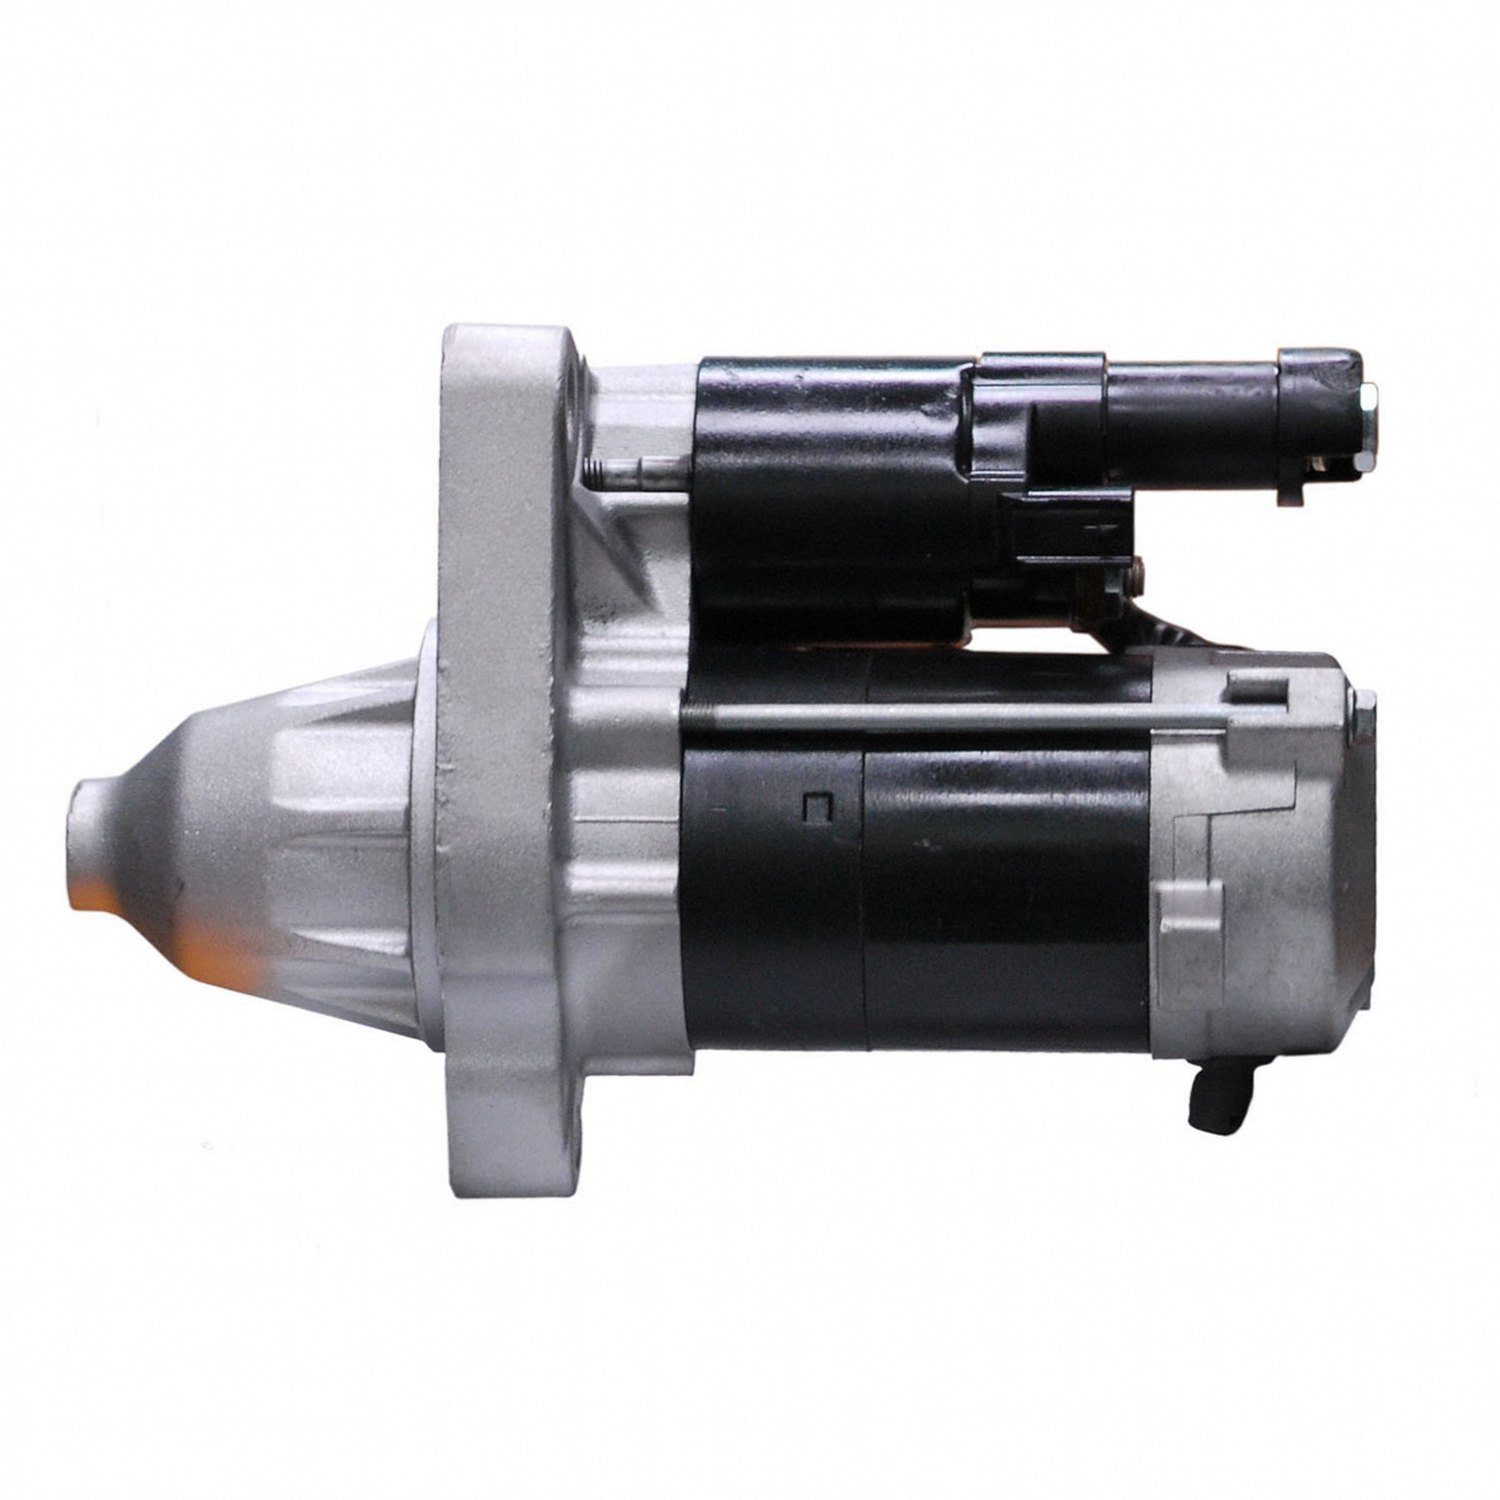 Remanufactured ACDelco 336-2069 Professional Starter